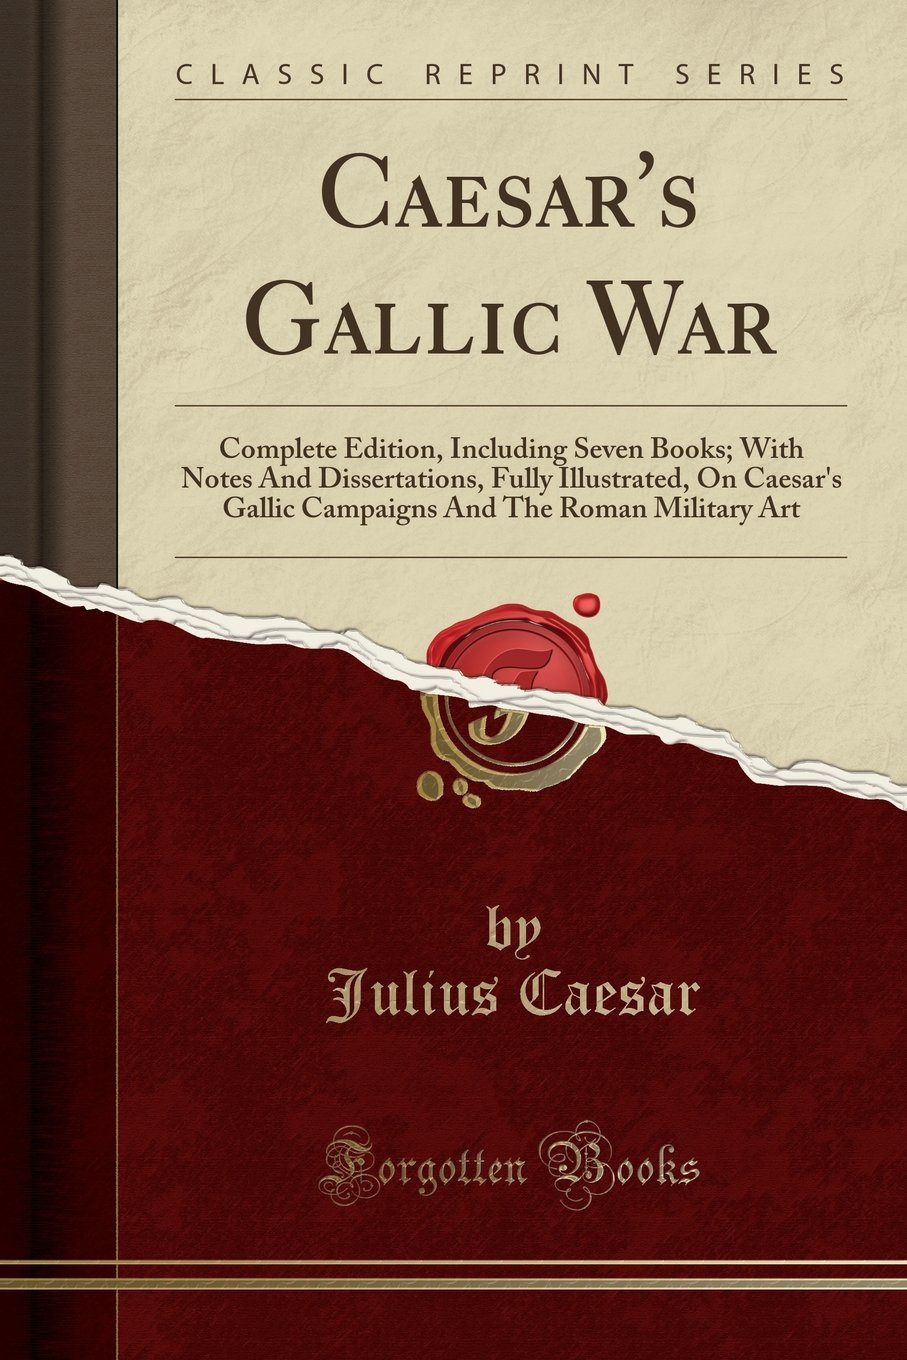 Caesar's Gallic War: Complete Edition, Including Seven Books; With Notes And Dissertations, Fully Illustrated, On Caesar's Gallic Campaigns And The Roman Military Art (Classic Reprint) (Latin Edition) ebook